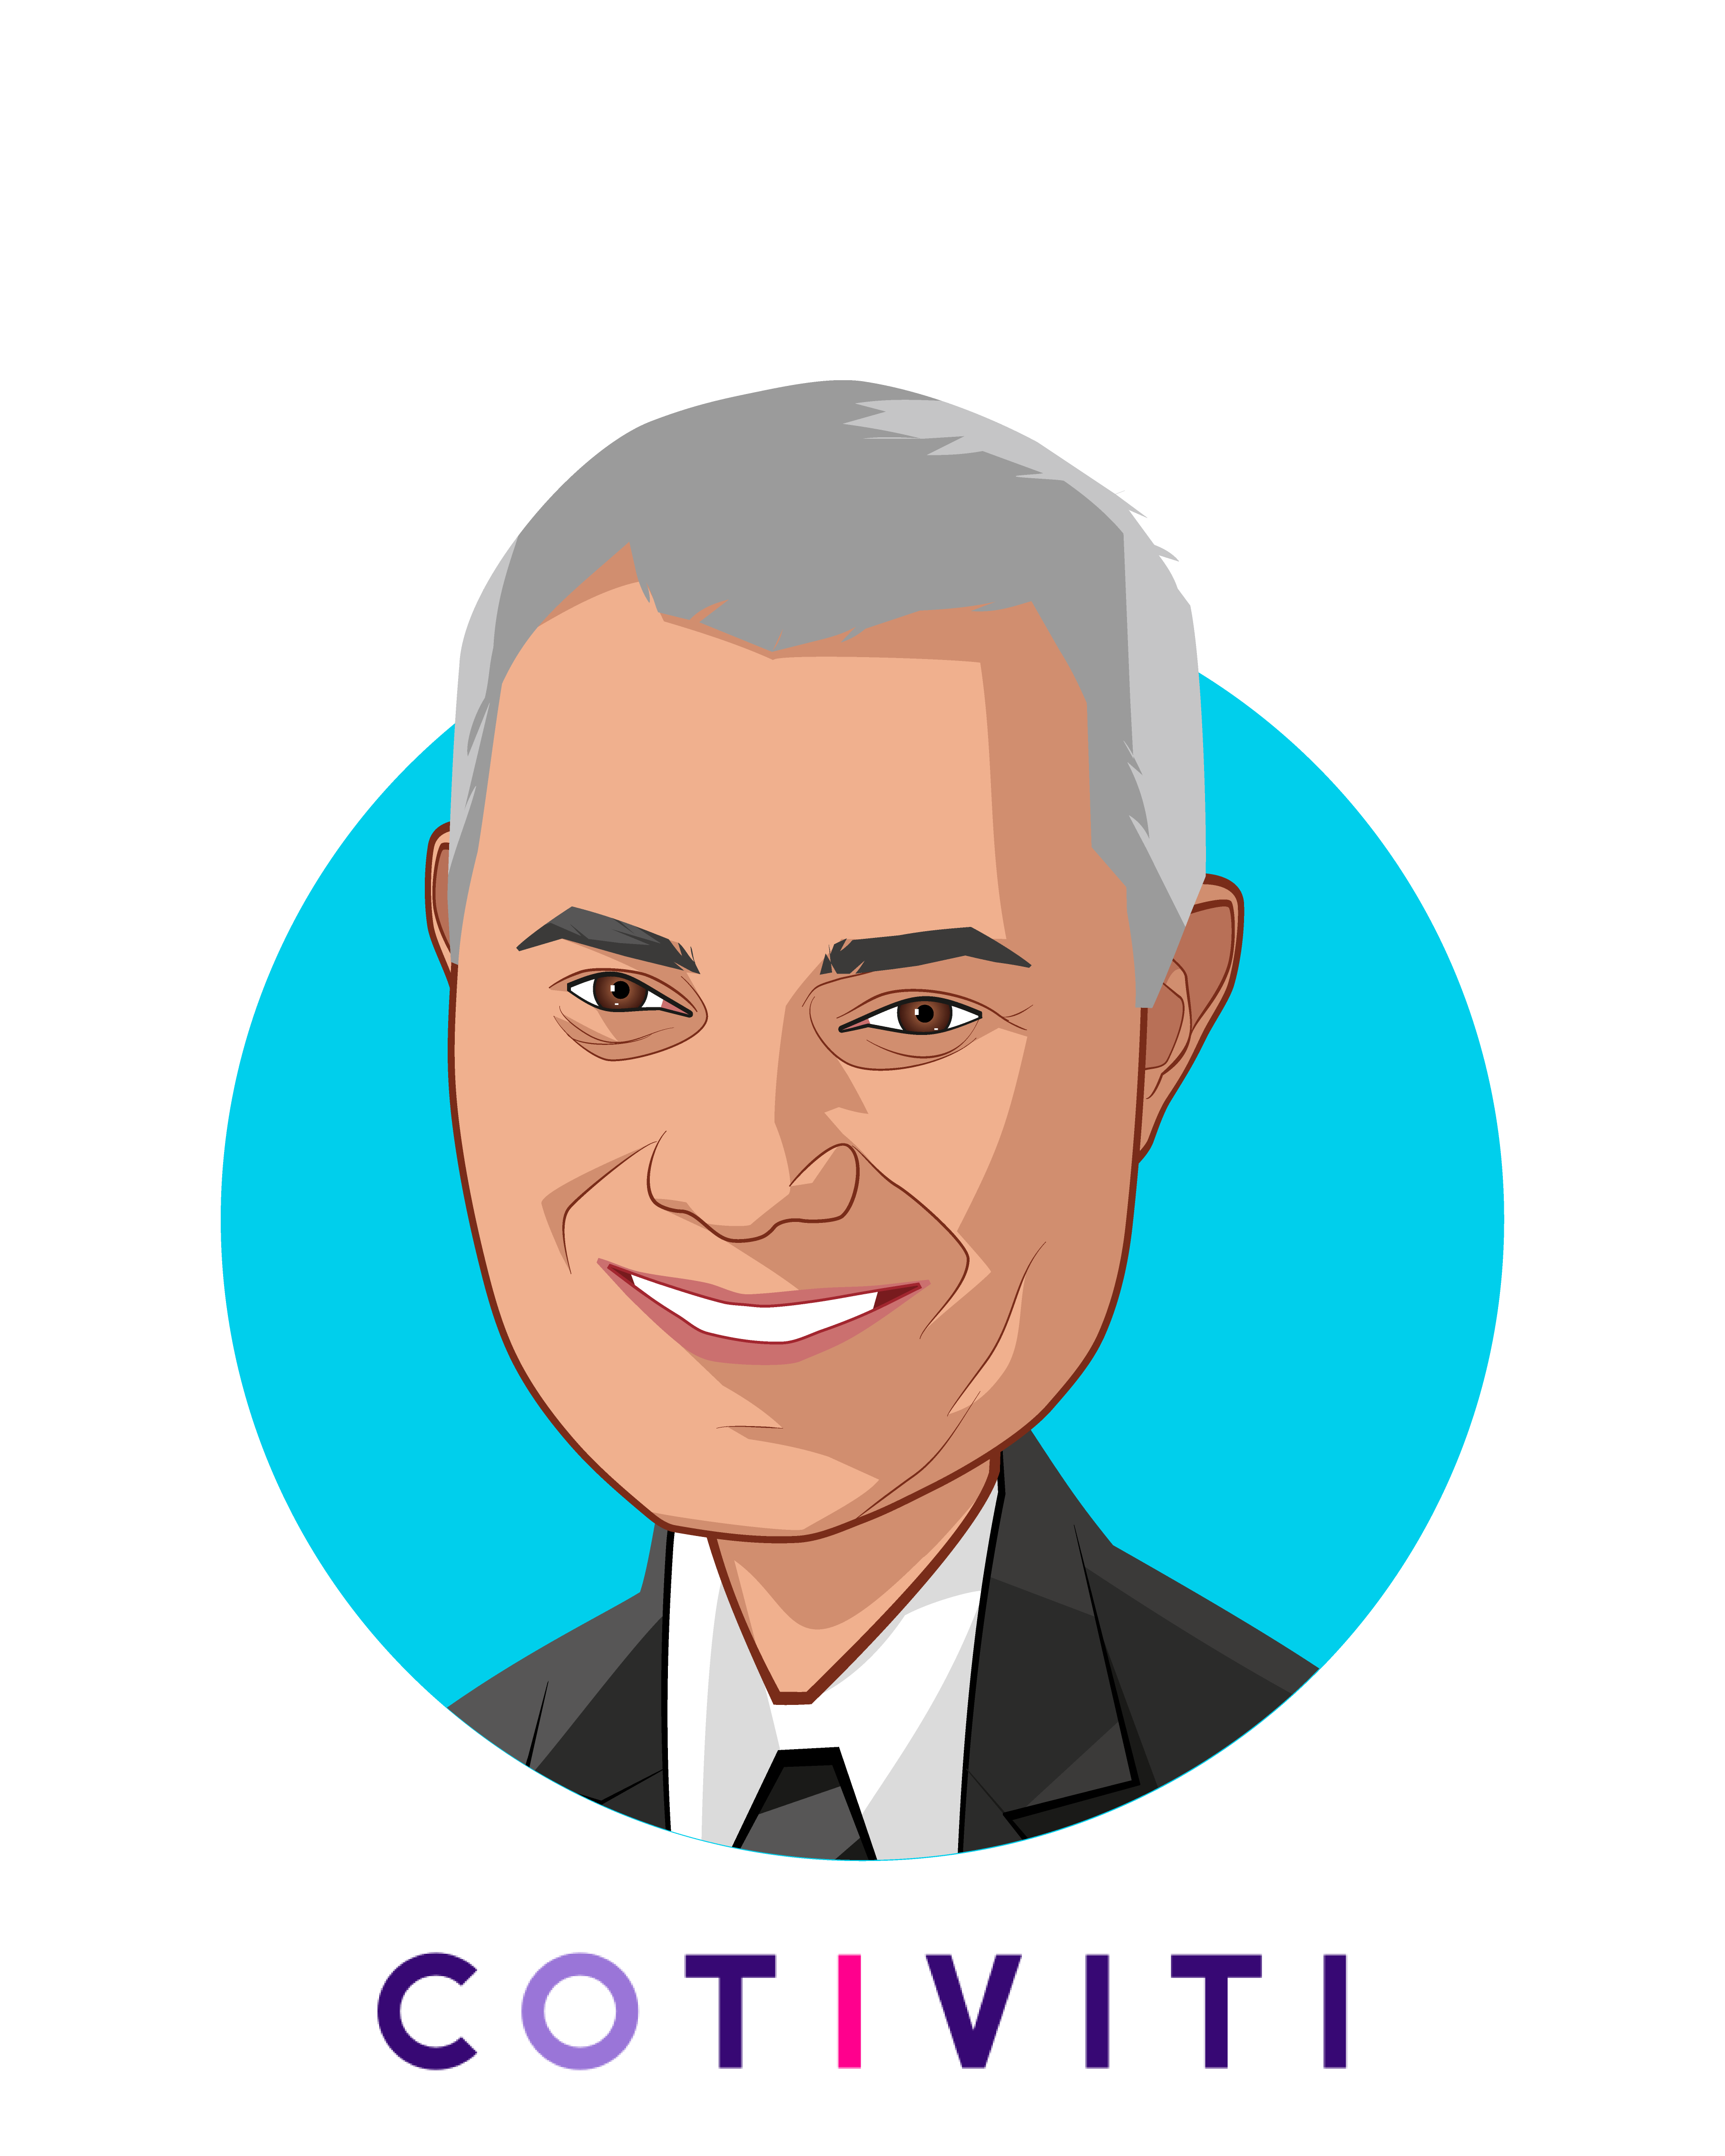 Main caricature of Emad Rizk, M.D., who is speaking at HLTH and is President and Chief Executive Officer at Cotiviti